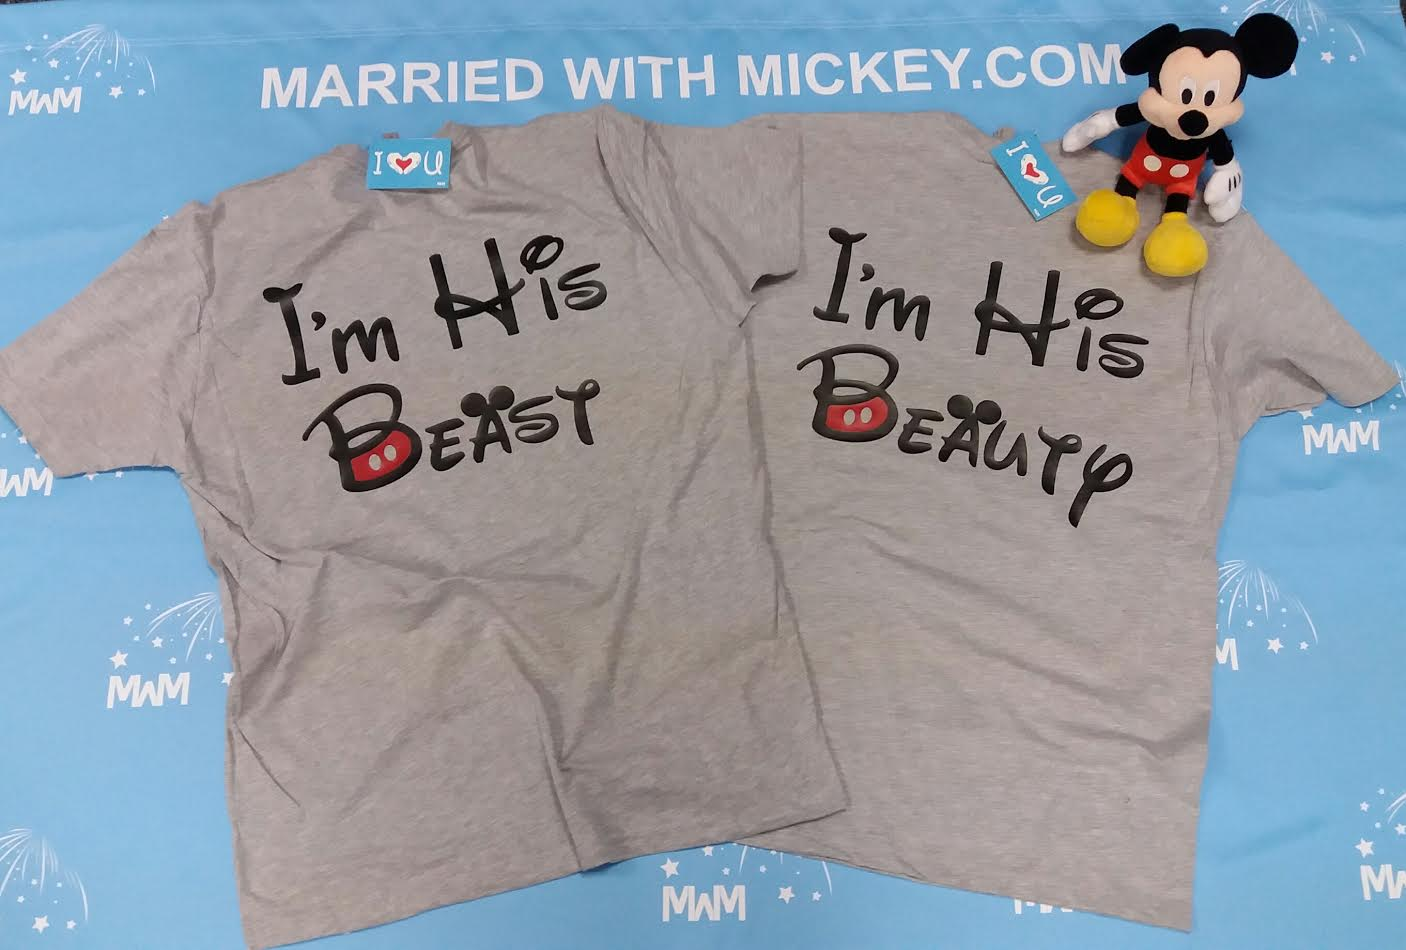 48d4dd1415 LGBT matching anniversary gifts for him couples Gays shirt I'm His Beauty  and I'm His Beast, Disney vacation trip disneymoon honeymoon etsy